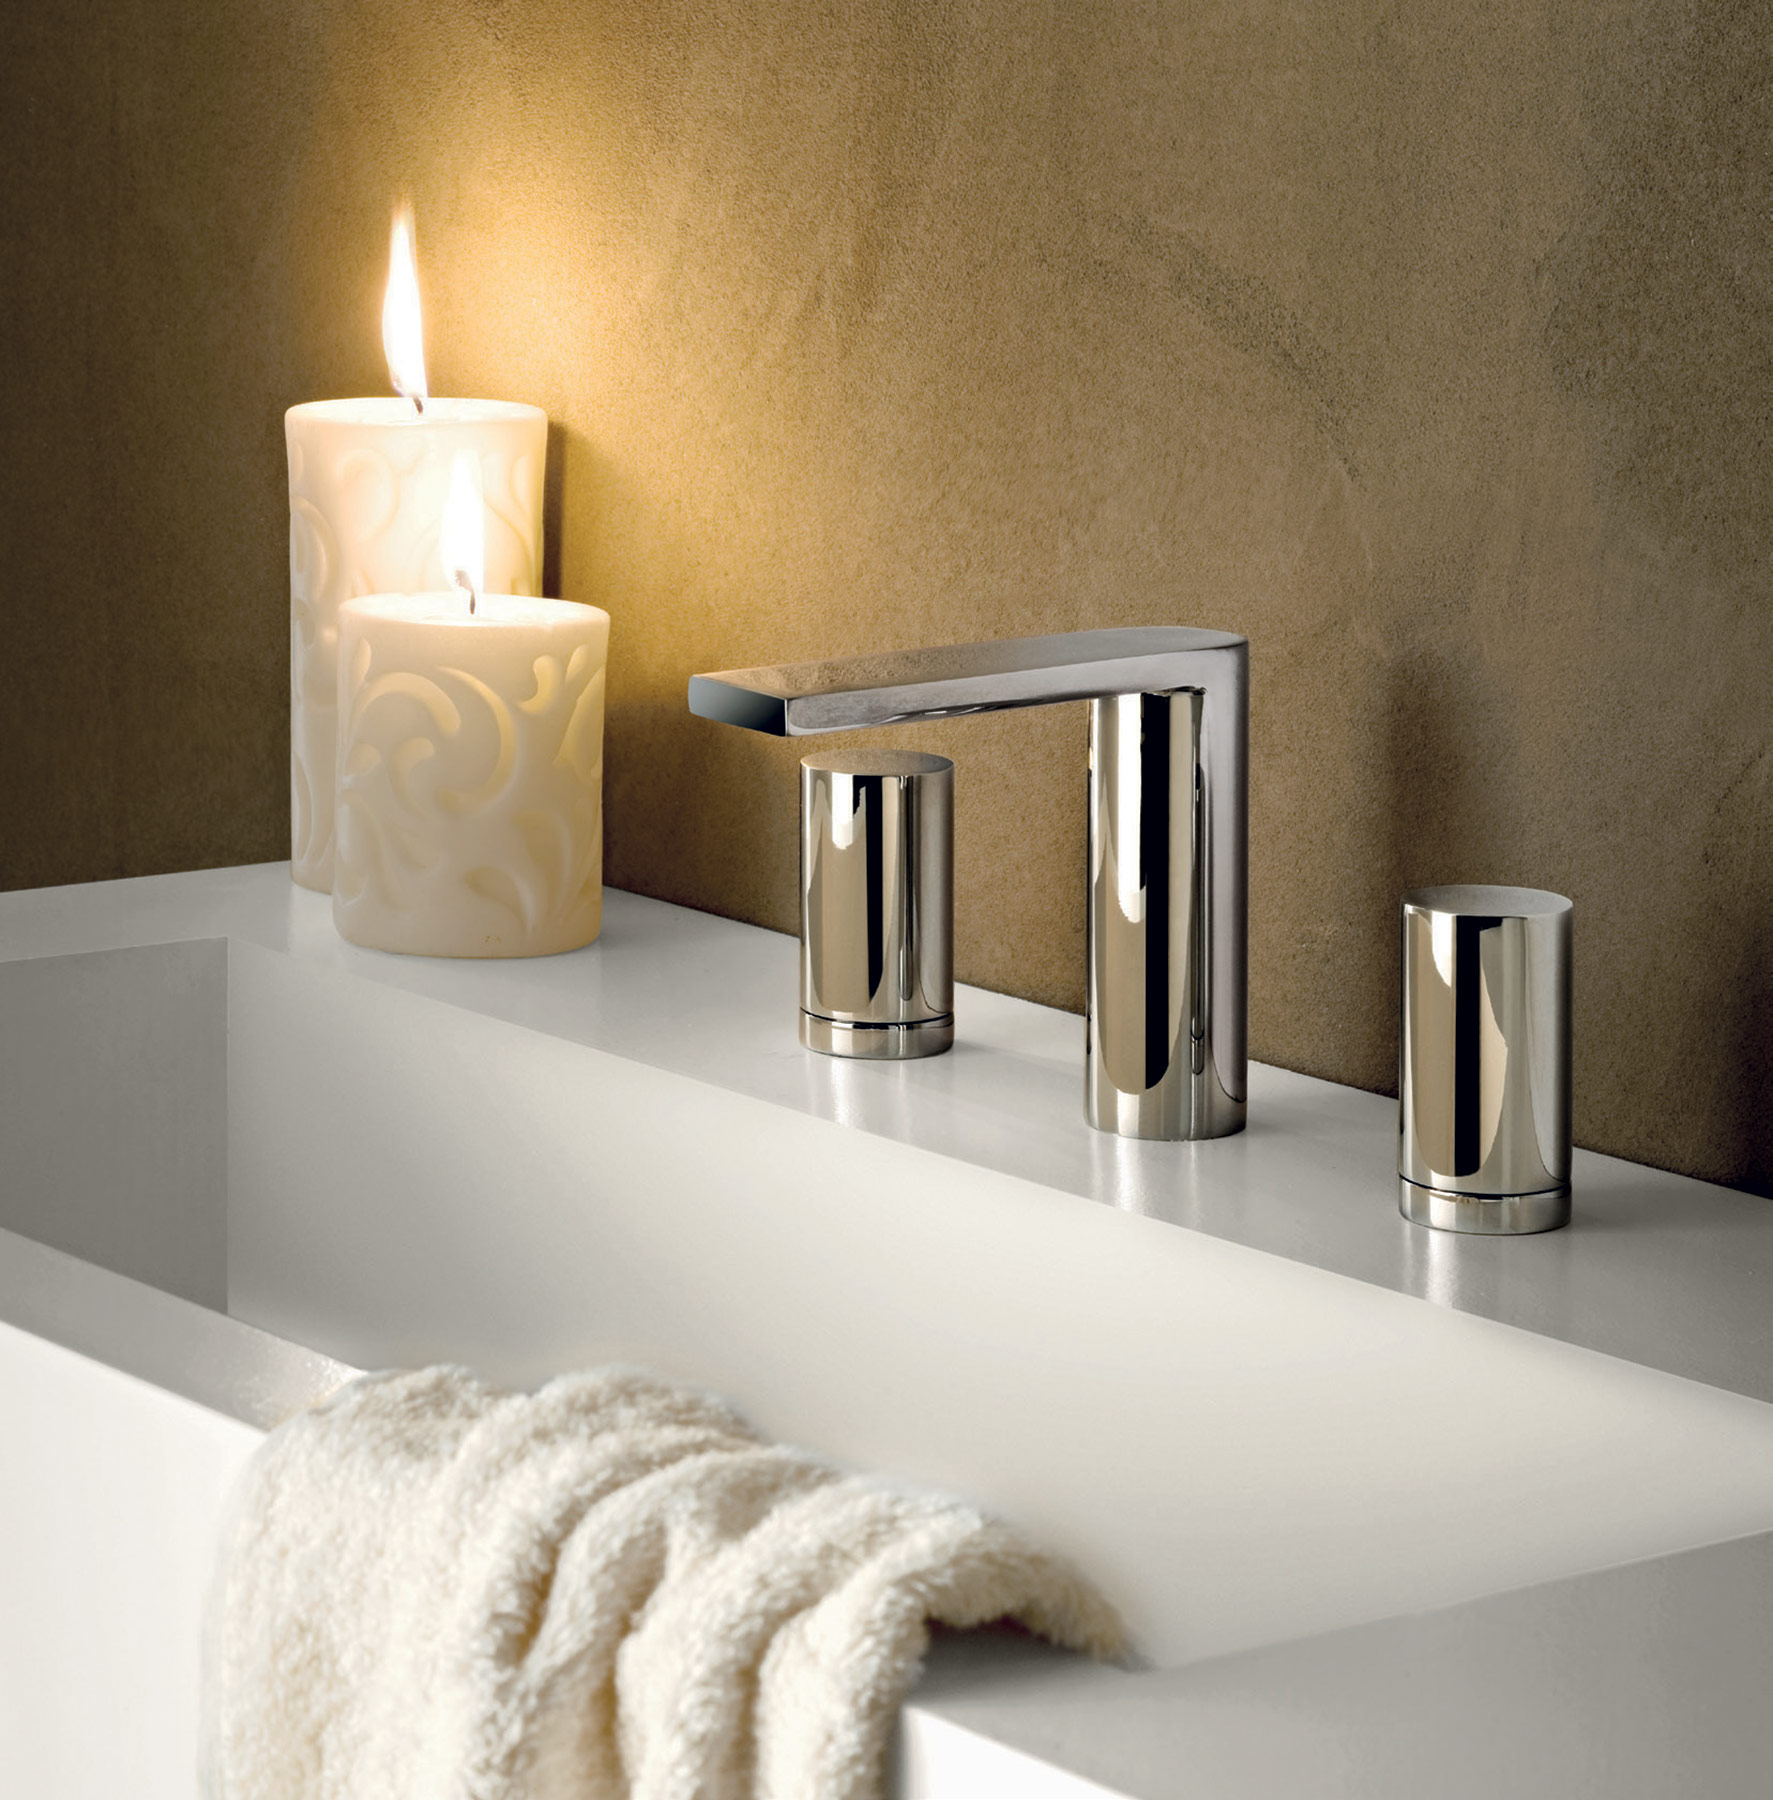 Contemporary Milano Deck Mount Faucet